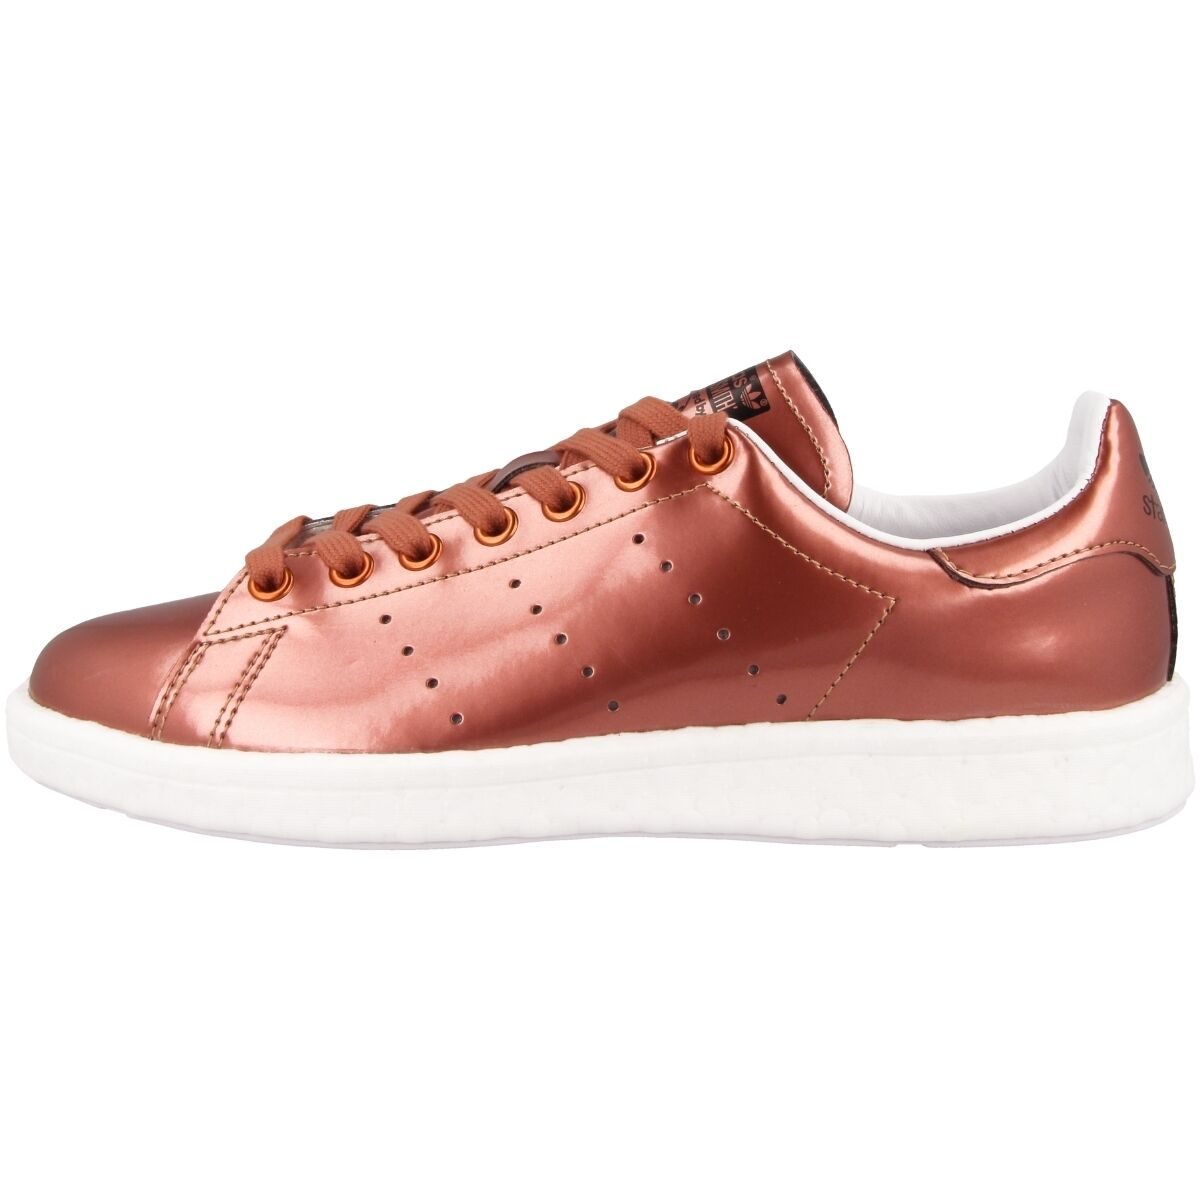 ADIDAS Stan Stan Stan Smith Boost Scarpe Retro scarpe da ginnastica COPPER METALLIC bb0107 Superstar a121f9